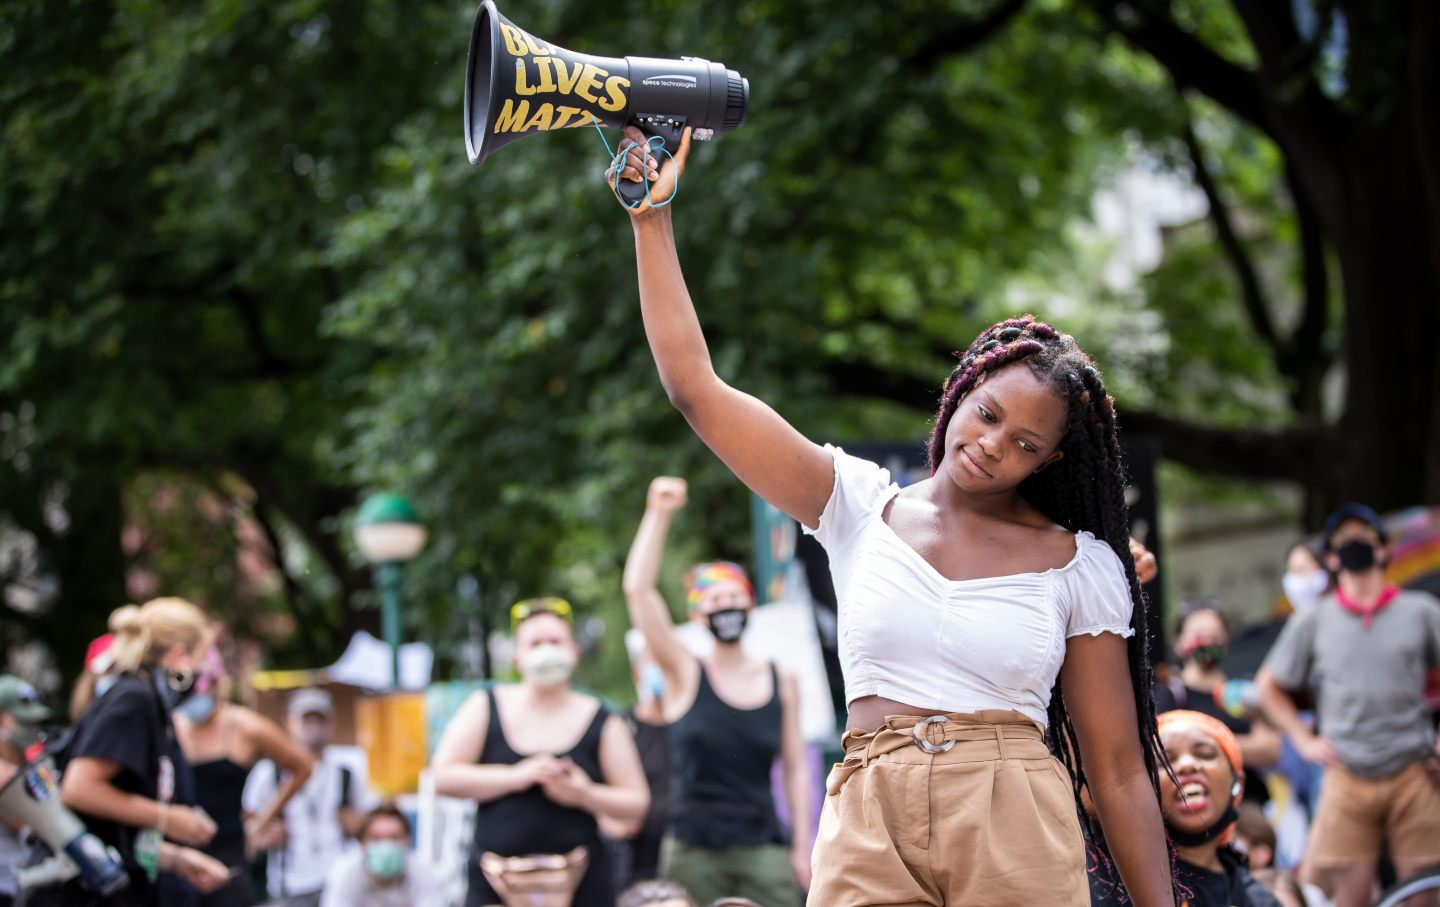 Kiara Williams holds a megaphone in the air that says